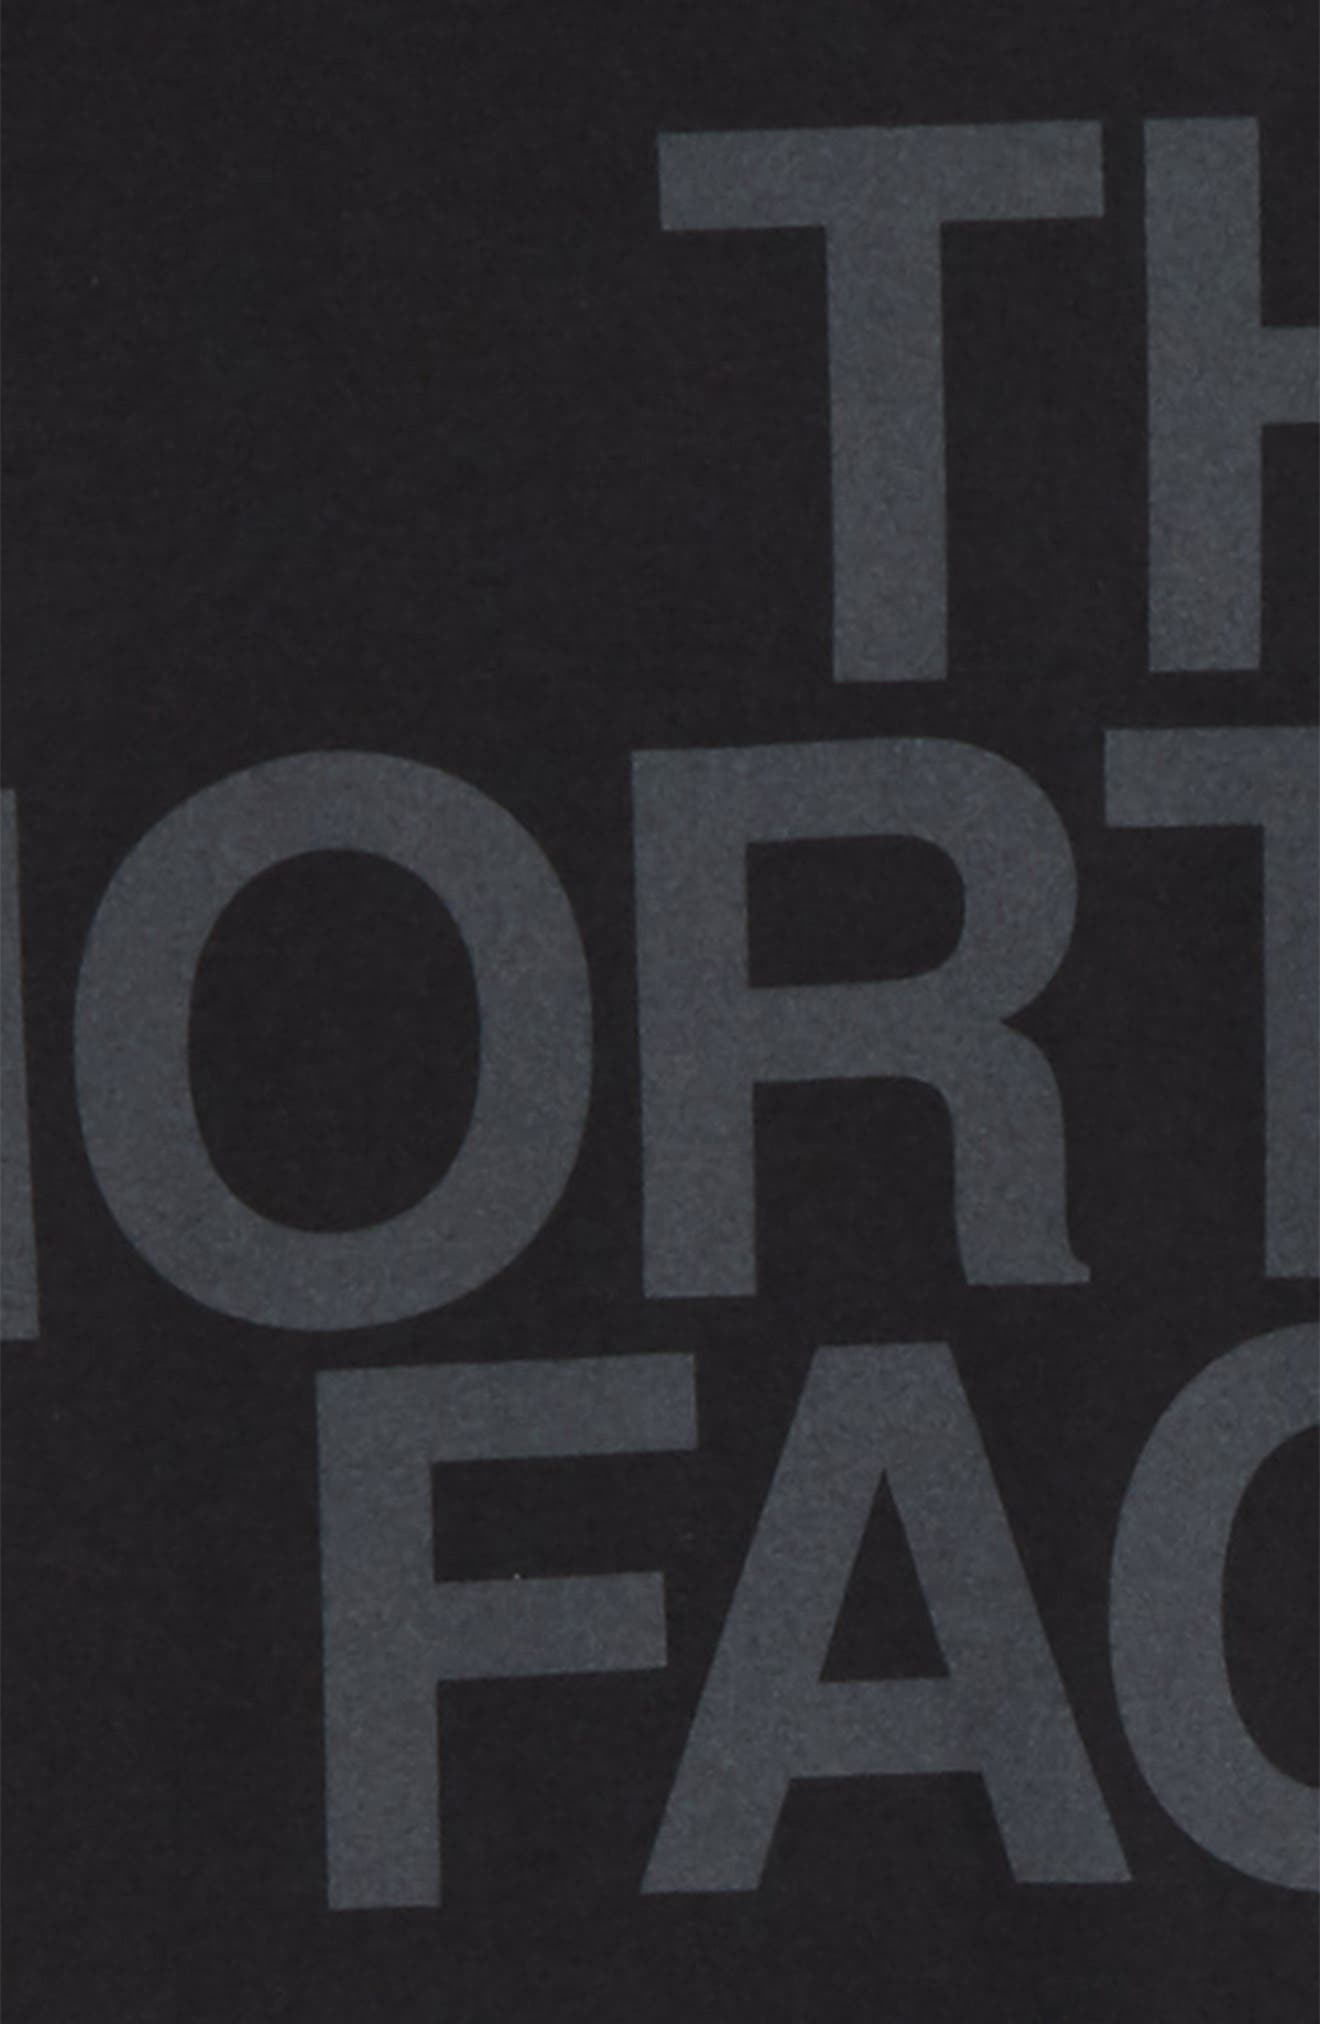 THE NORTH FACE,                             Graphic T-Shirt,                             Alternate thumbnail 2, color,                             001